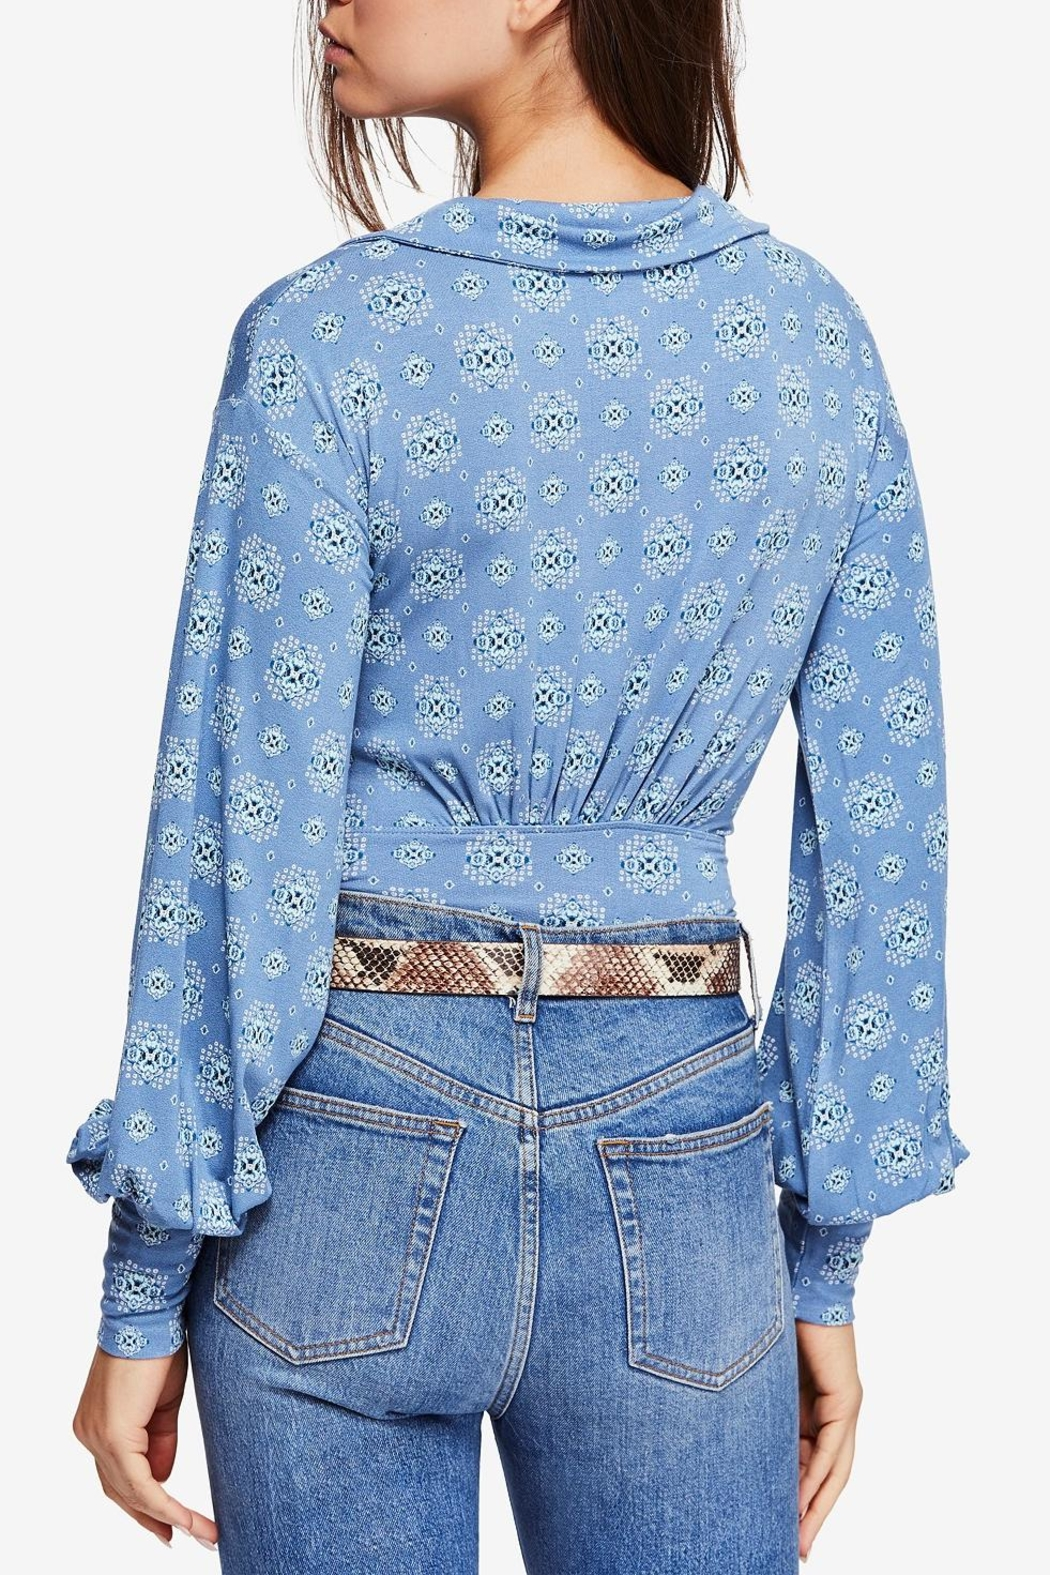 Free People Sydney Printed Top - Front Full Image